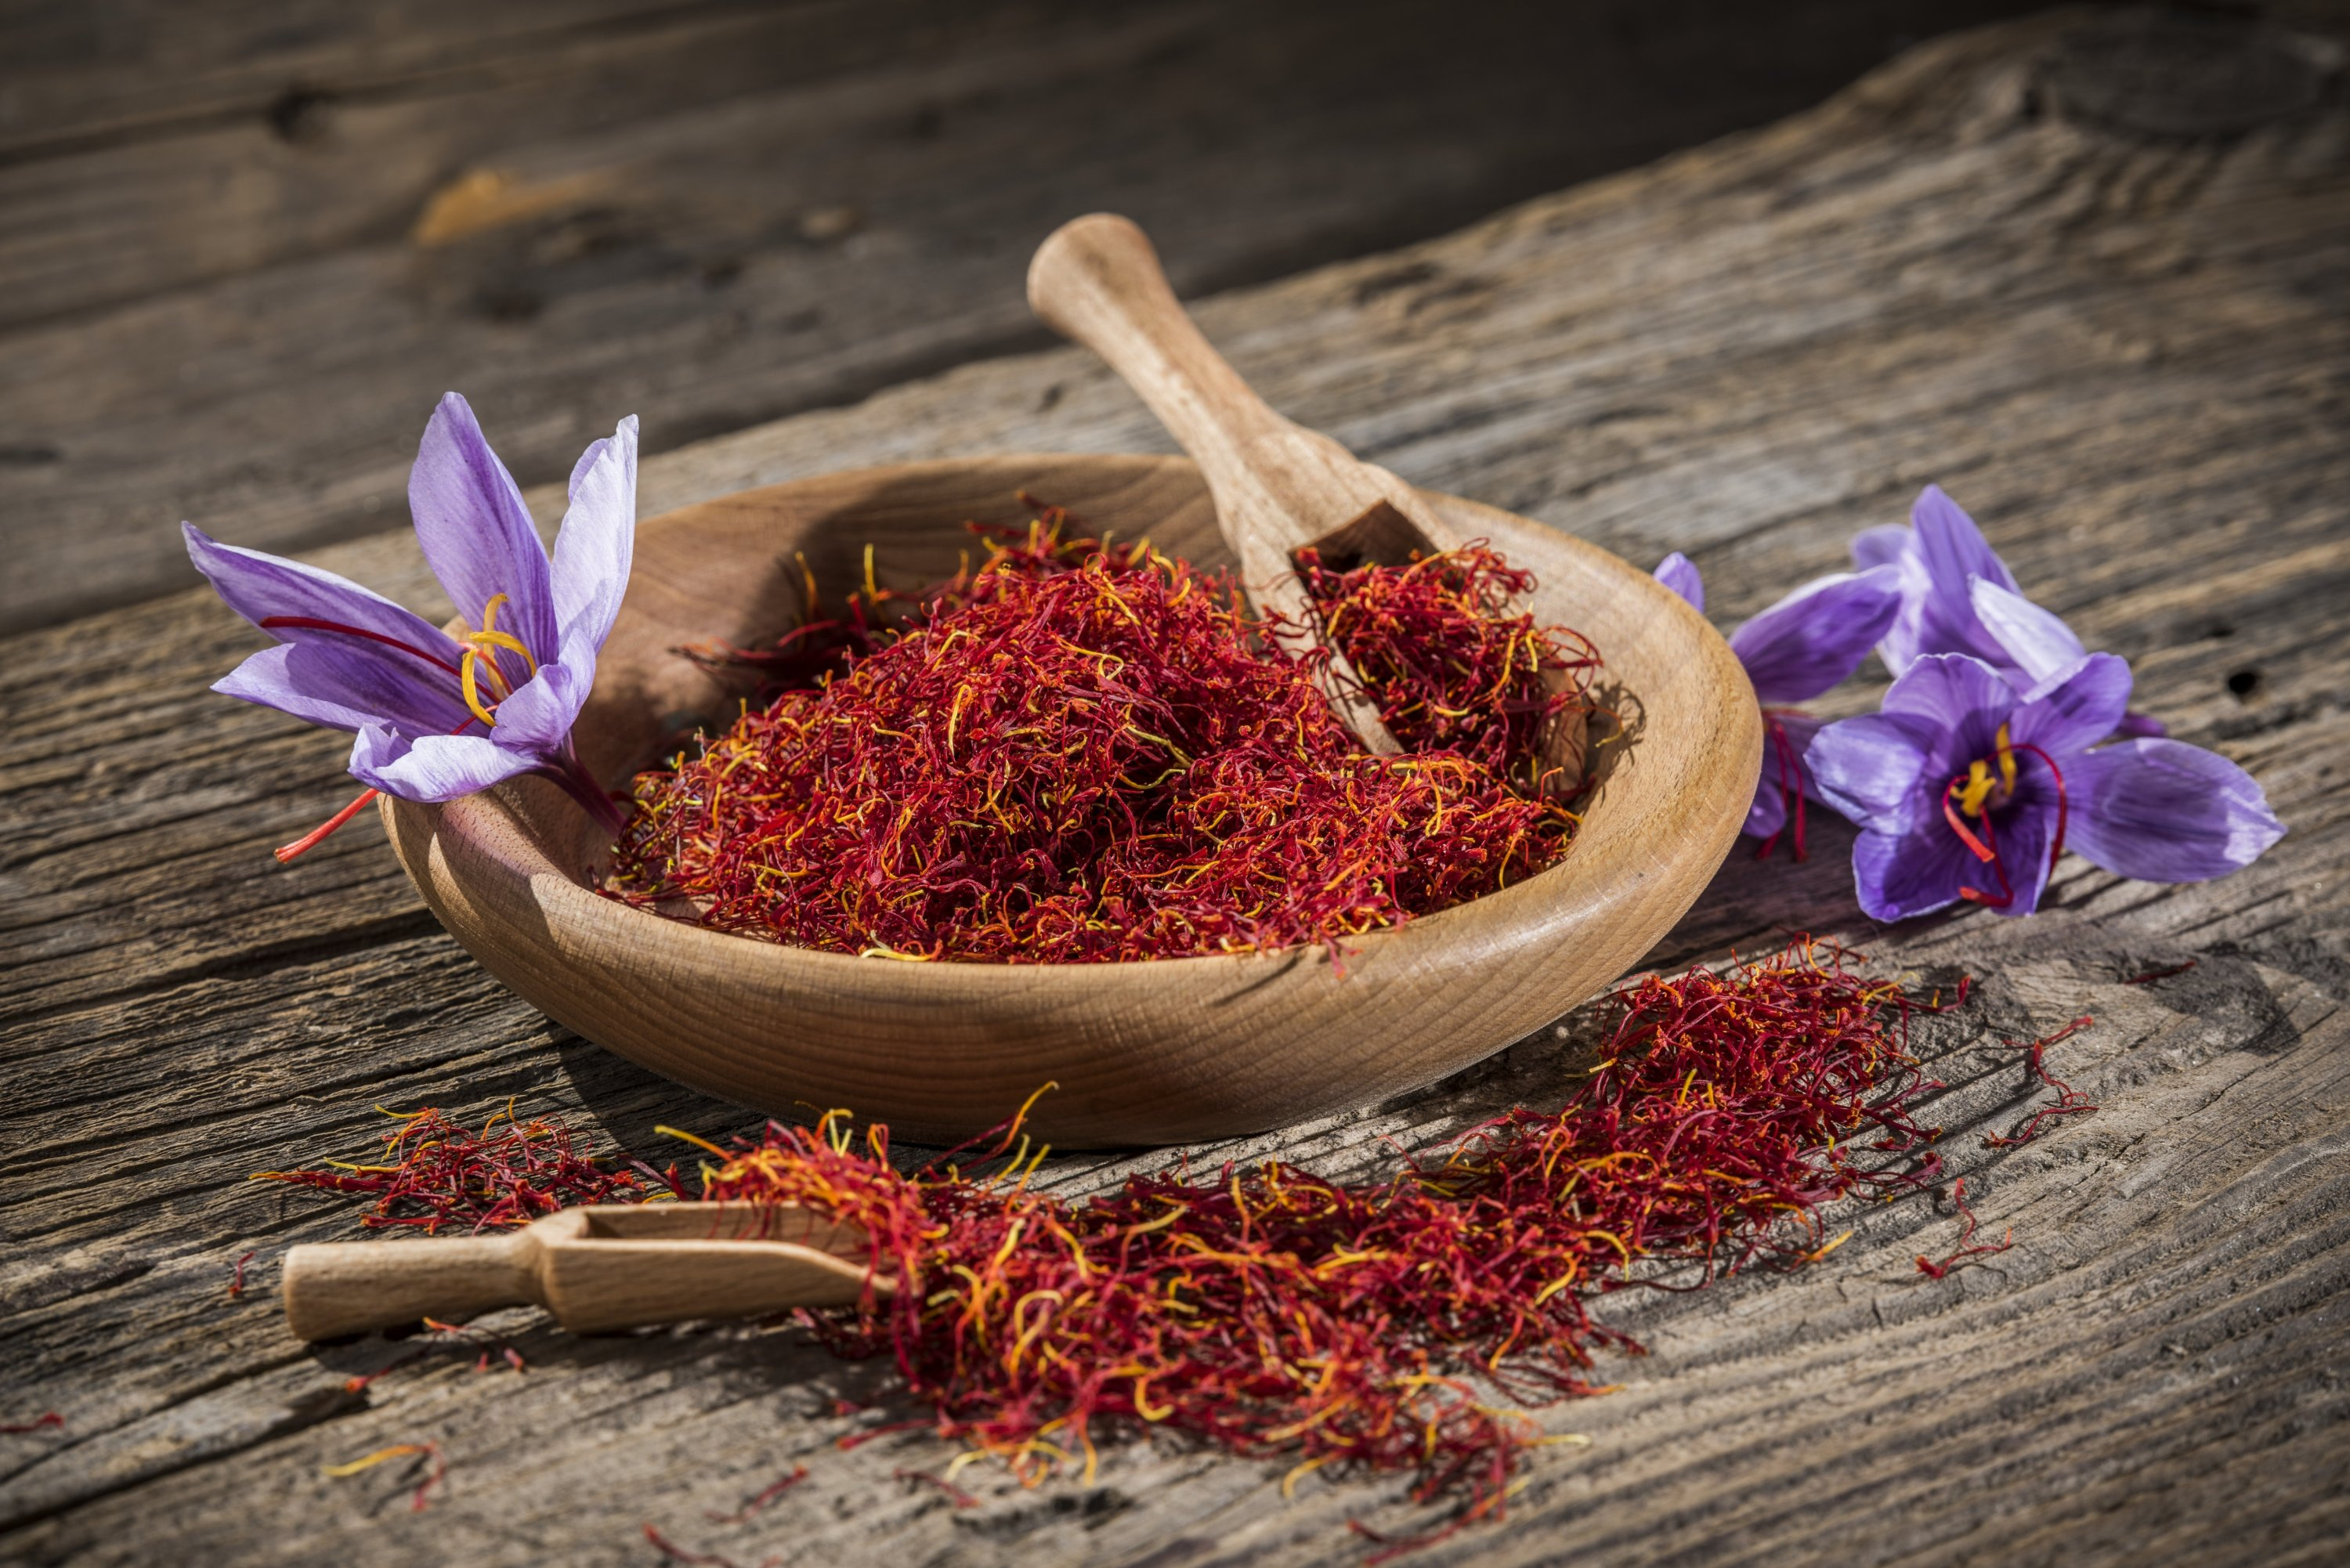 Saffron in a wooden bowl with saffron flowers on the side. (Shutterstock Photo)